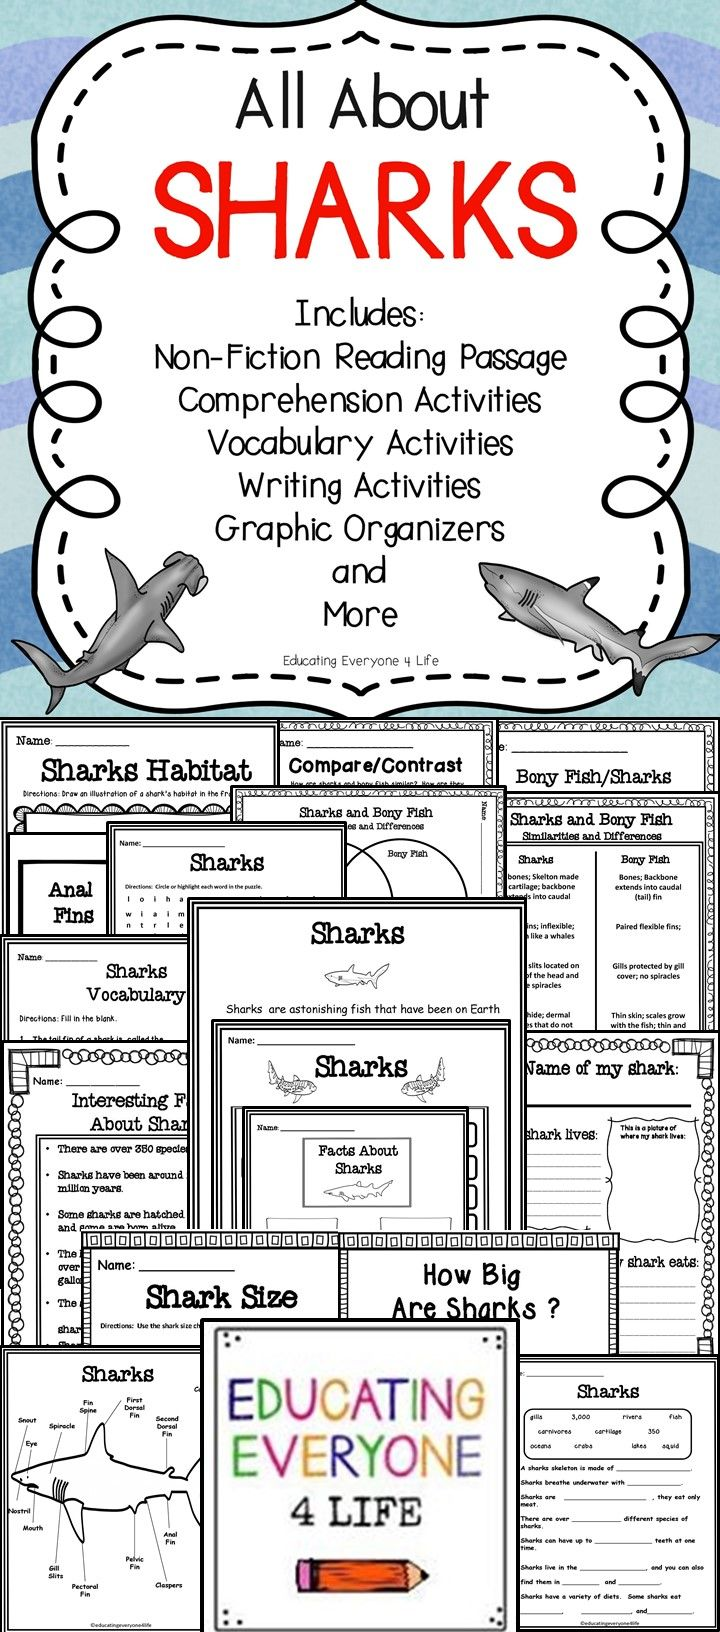 Children love learning about sharks. This All About Sharks resource includes everything you need to teach your students about shark habitat, facts about sharks, the parts of a shark, and more. Click here to download this amazing classroom resource!